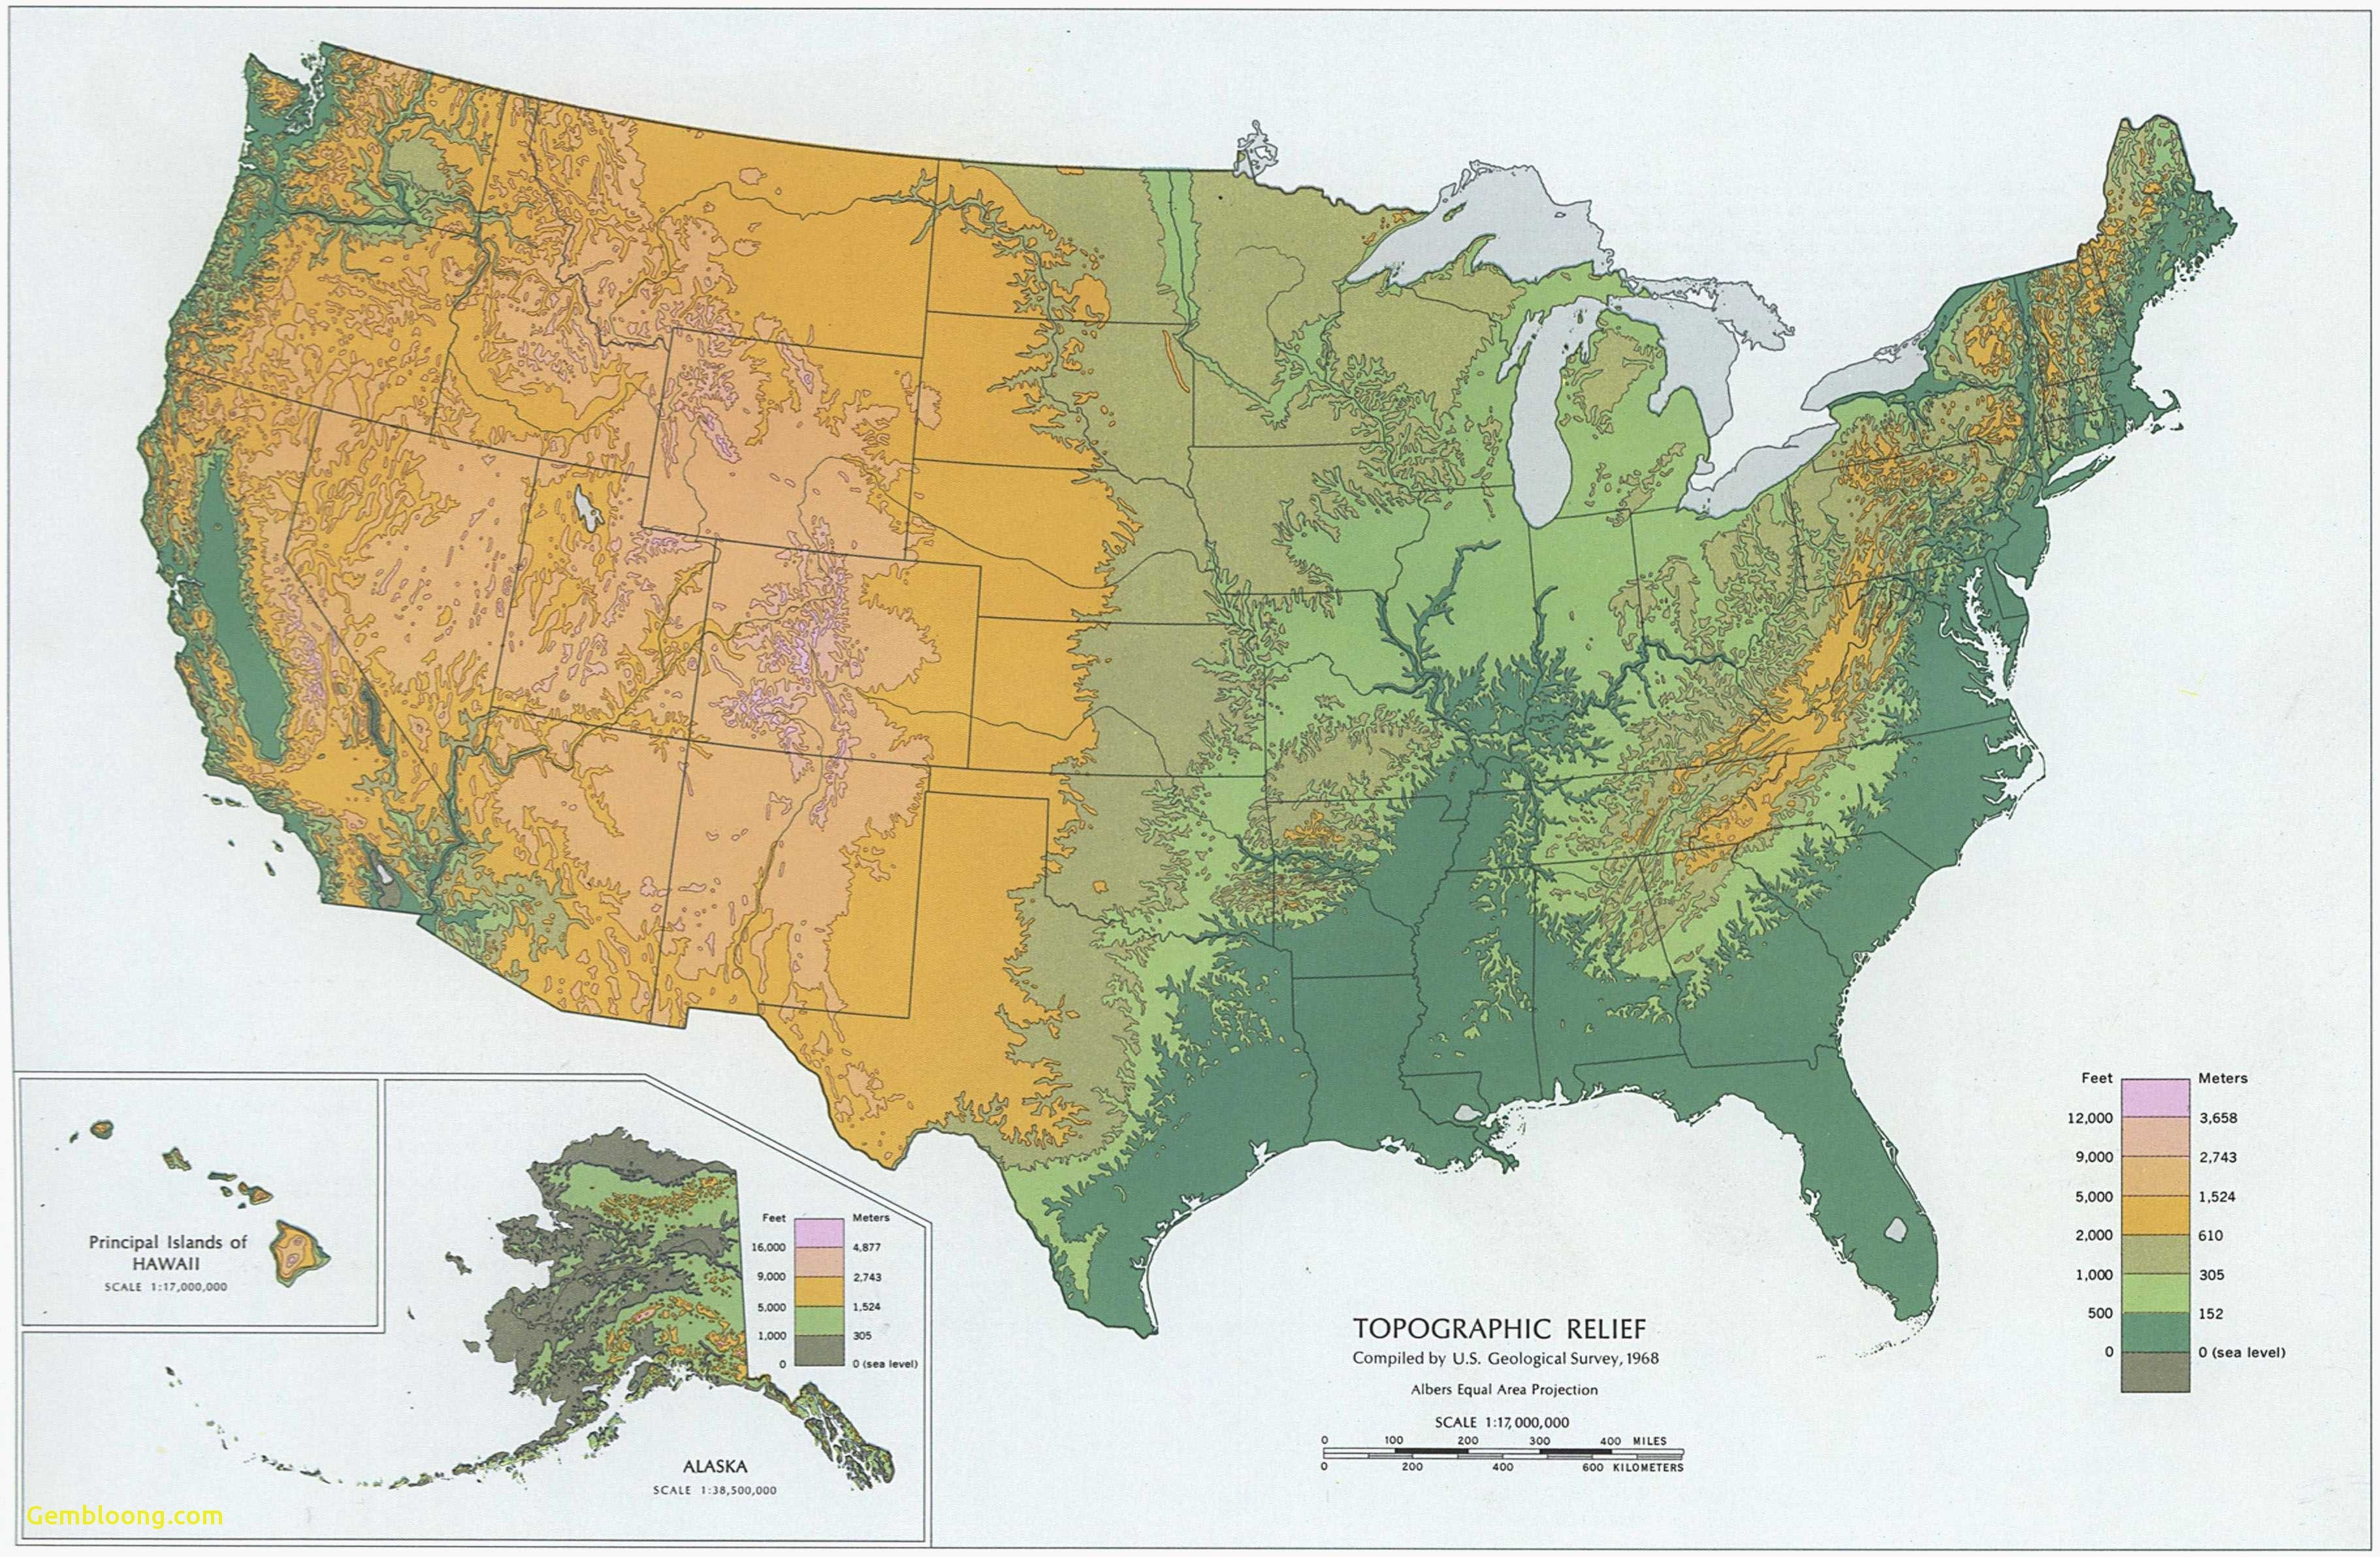 Topographic Map Eastern Us Best Topographic Maps United States - Printable Topographic Map Of The United States